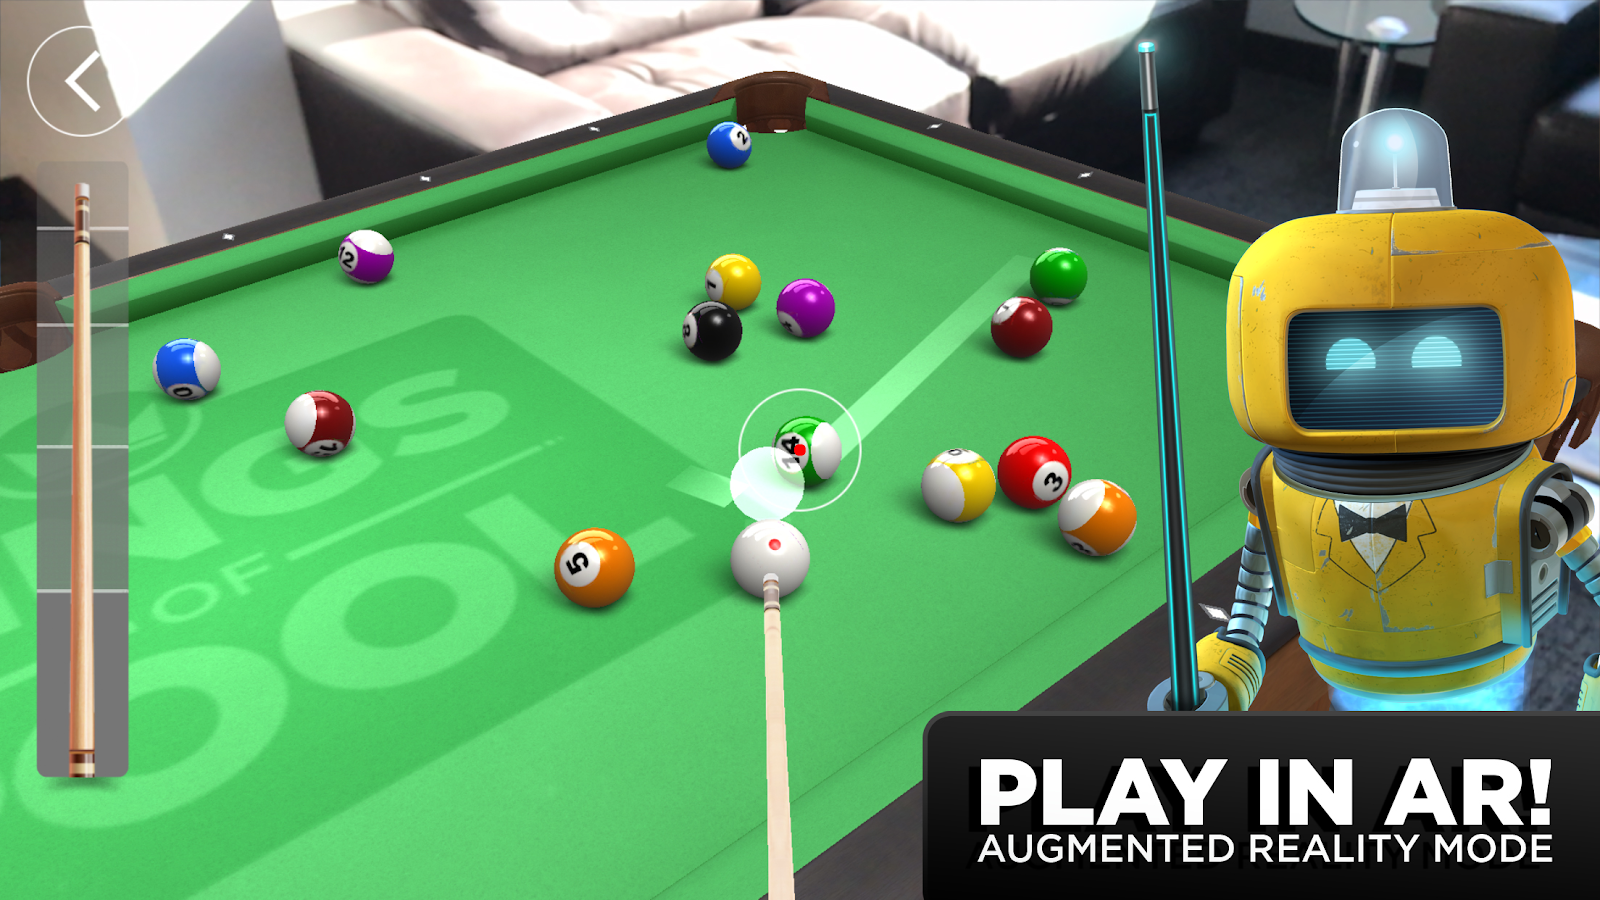 Kings of Pool - Online 8 Ball 1.25.5 APK Download - Android ... -